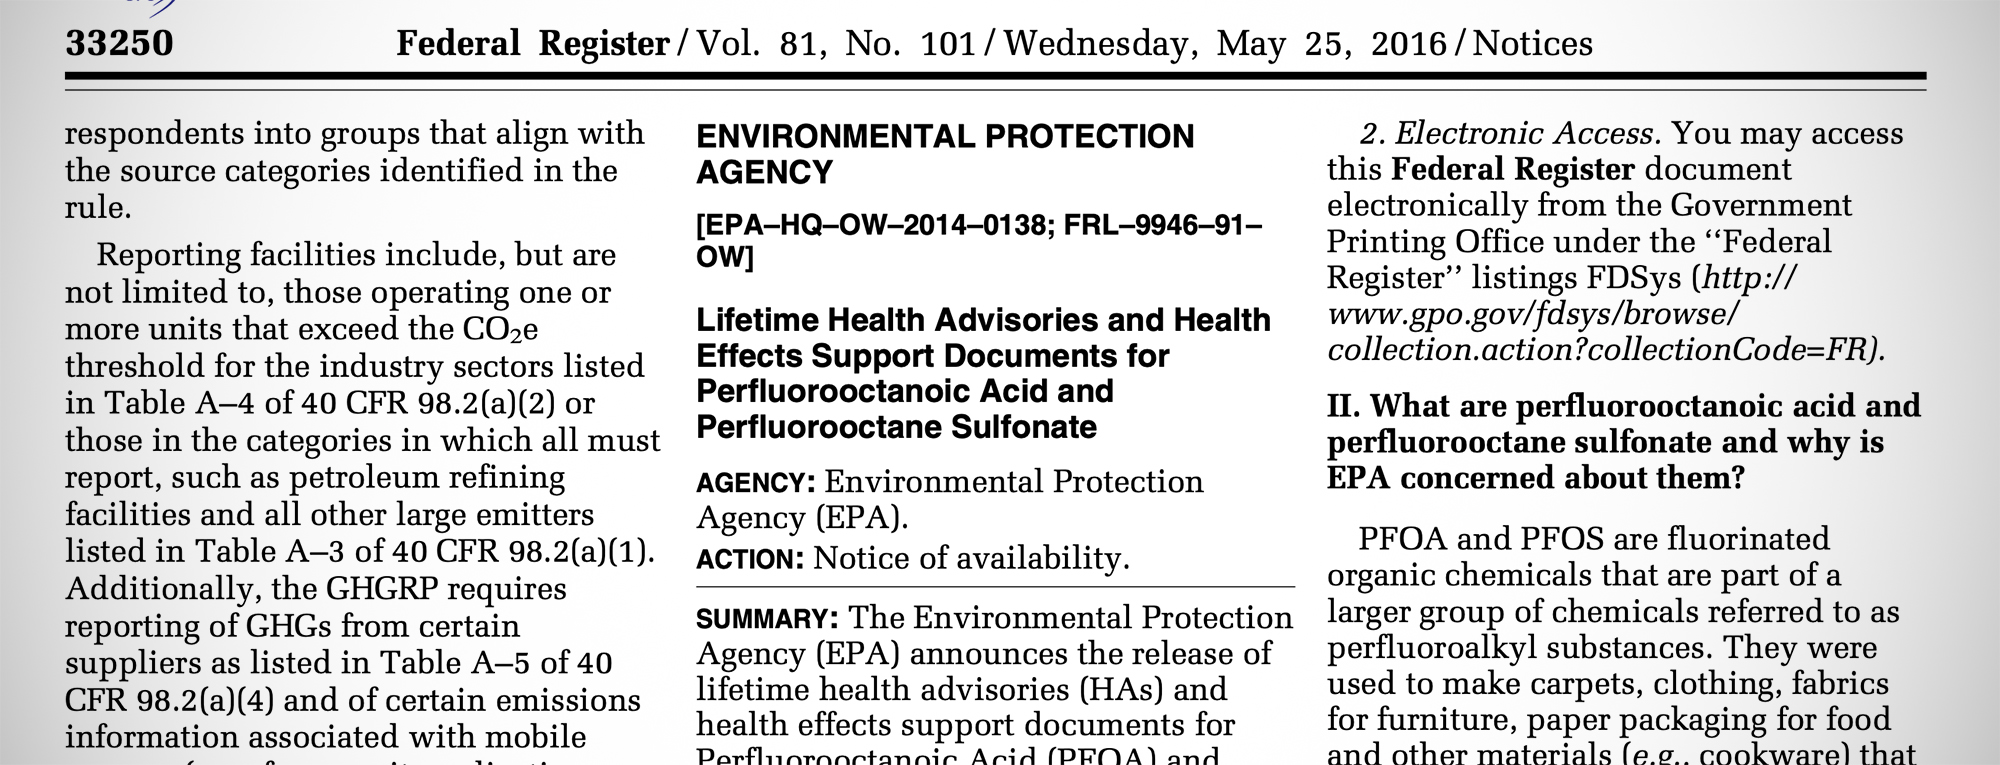 EPA drinking water health advisory